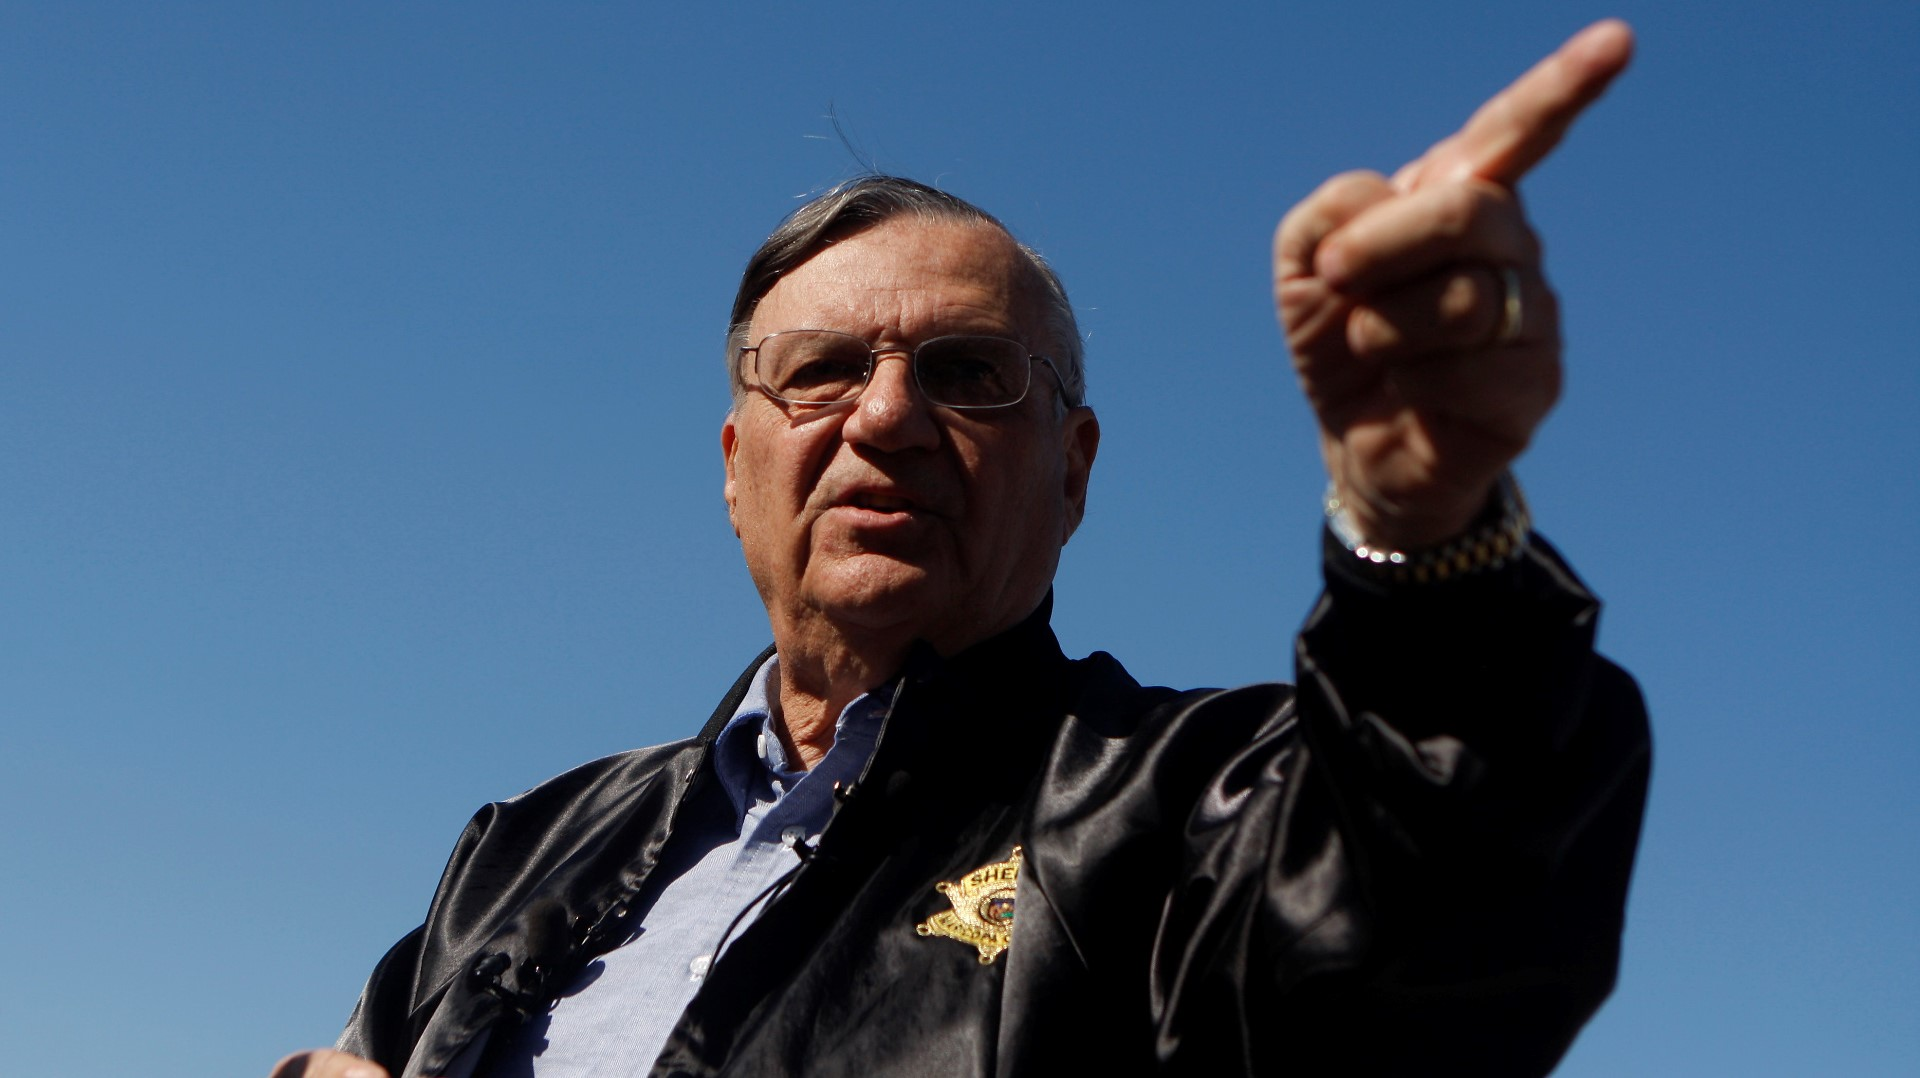 12news arpaio maintains obamas birth certificate is fake at 12news arpaio maintains obamas birth certificate is fake at fresno gop event aiddatafo Image collections